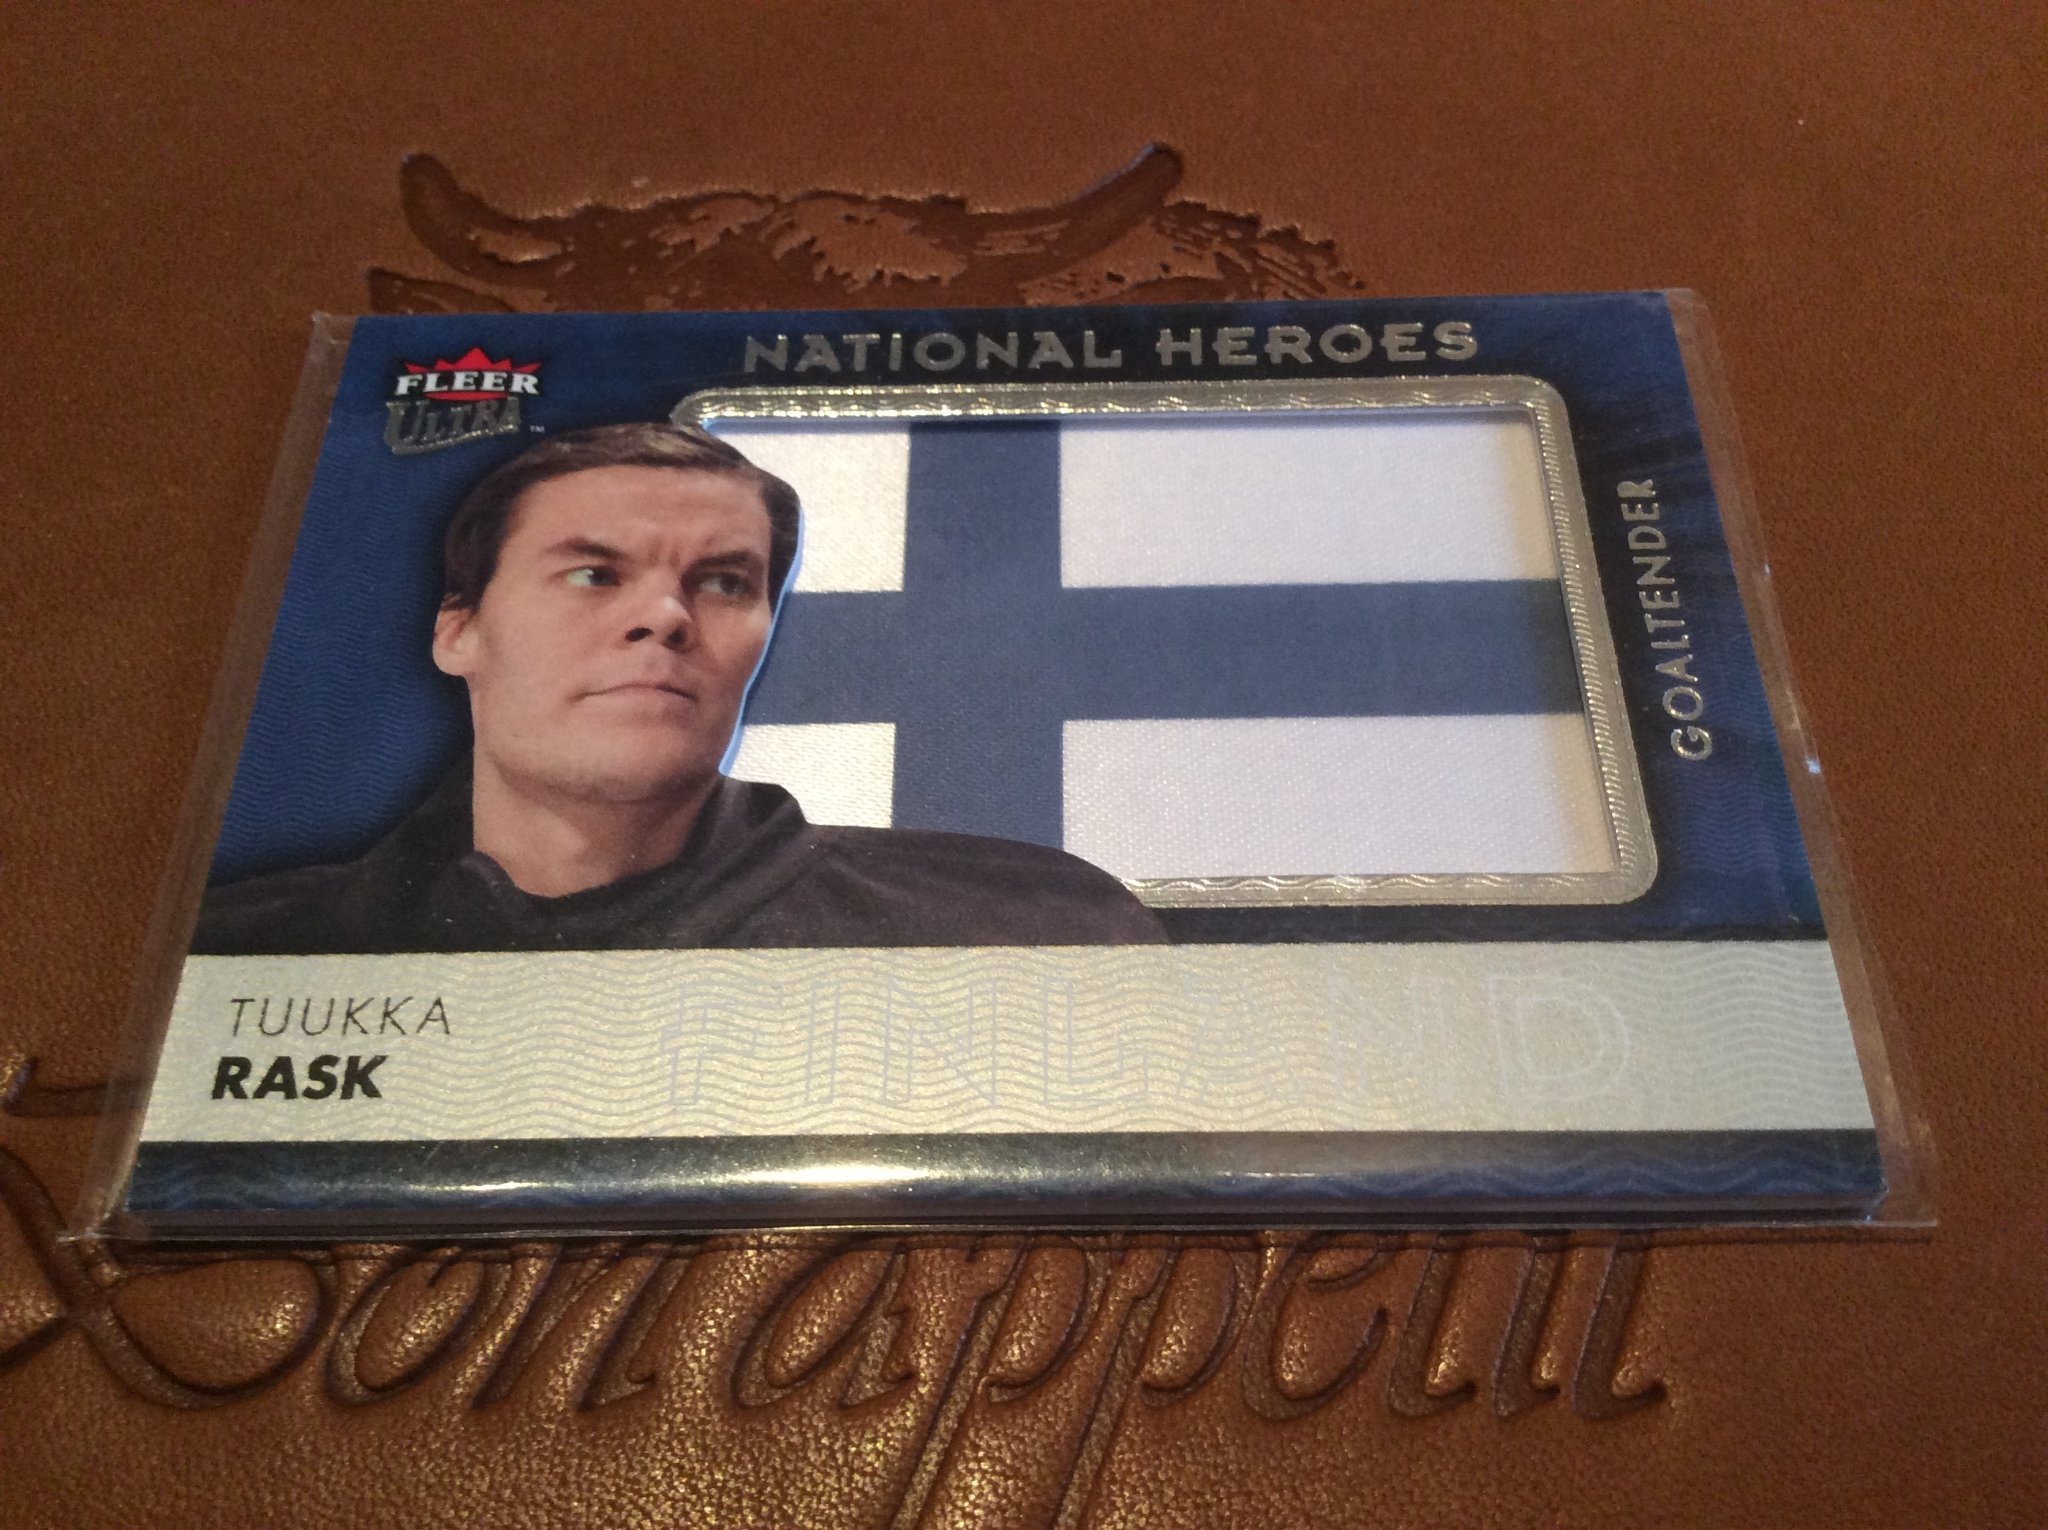 Hockeykort Tuukka Rask National Heroes